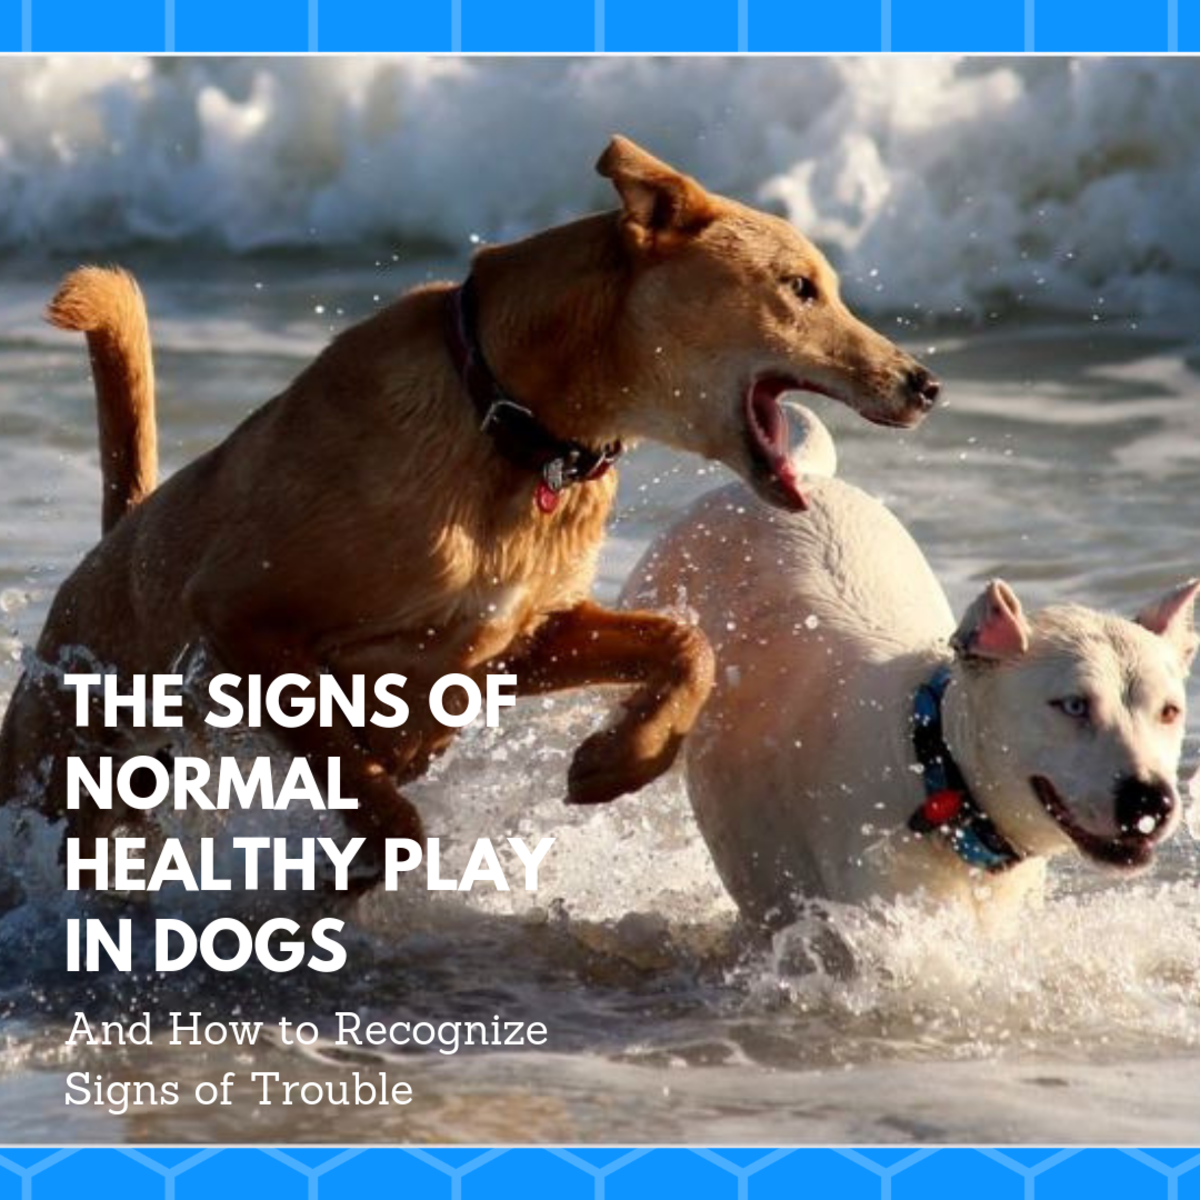 Signs of Healthy, Normal Play in Dogs